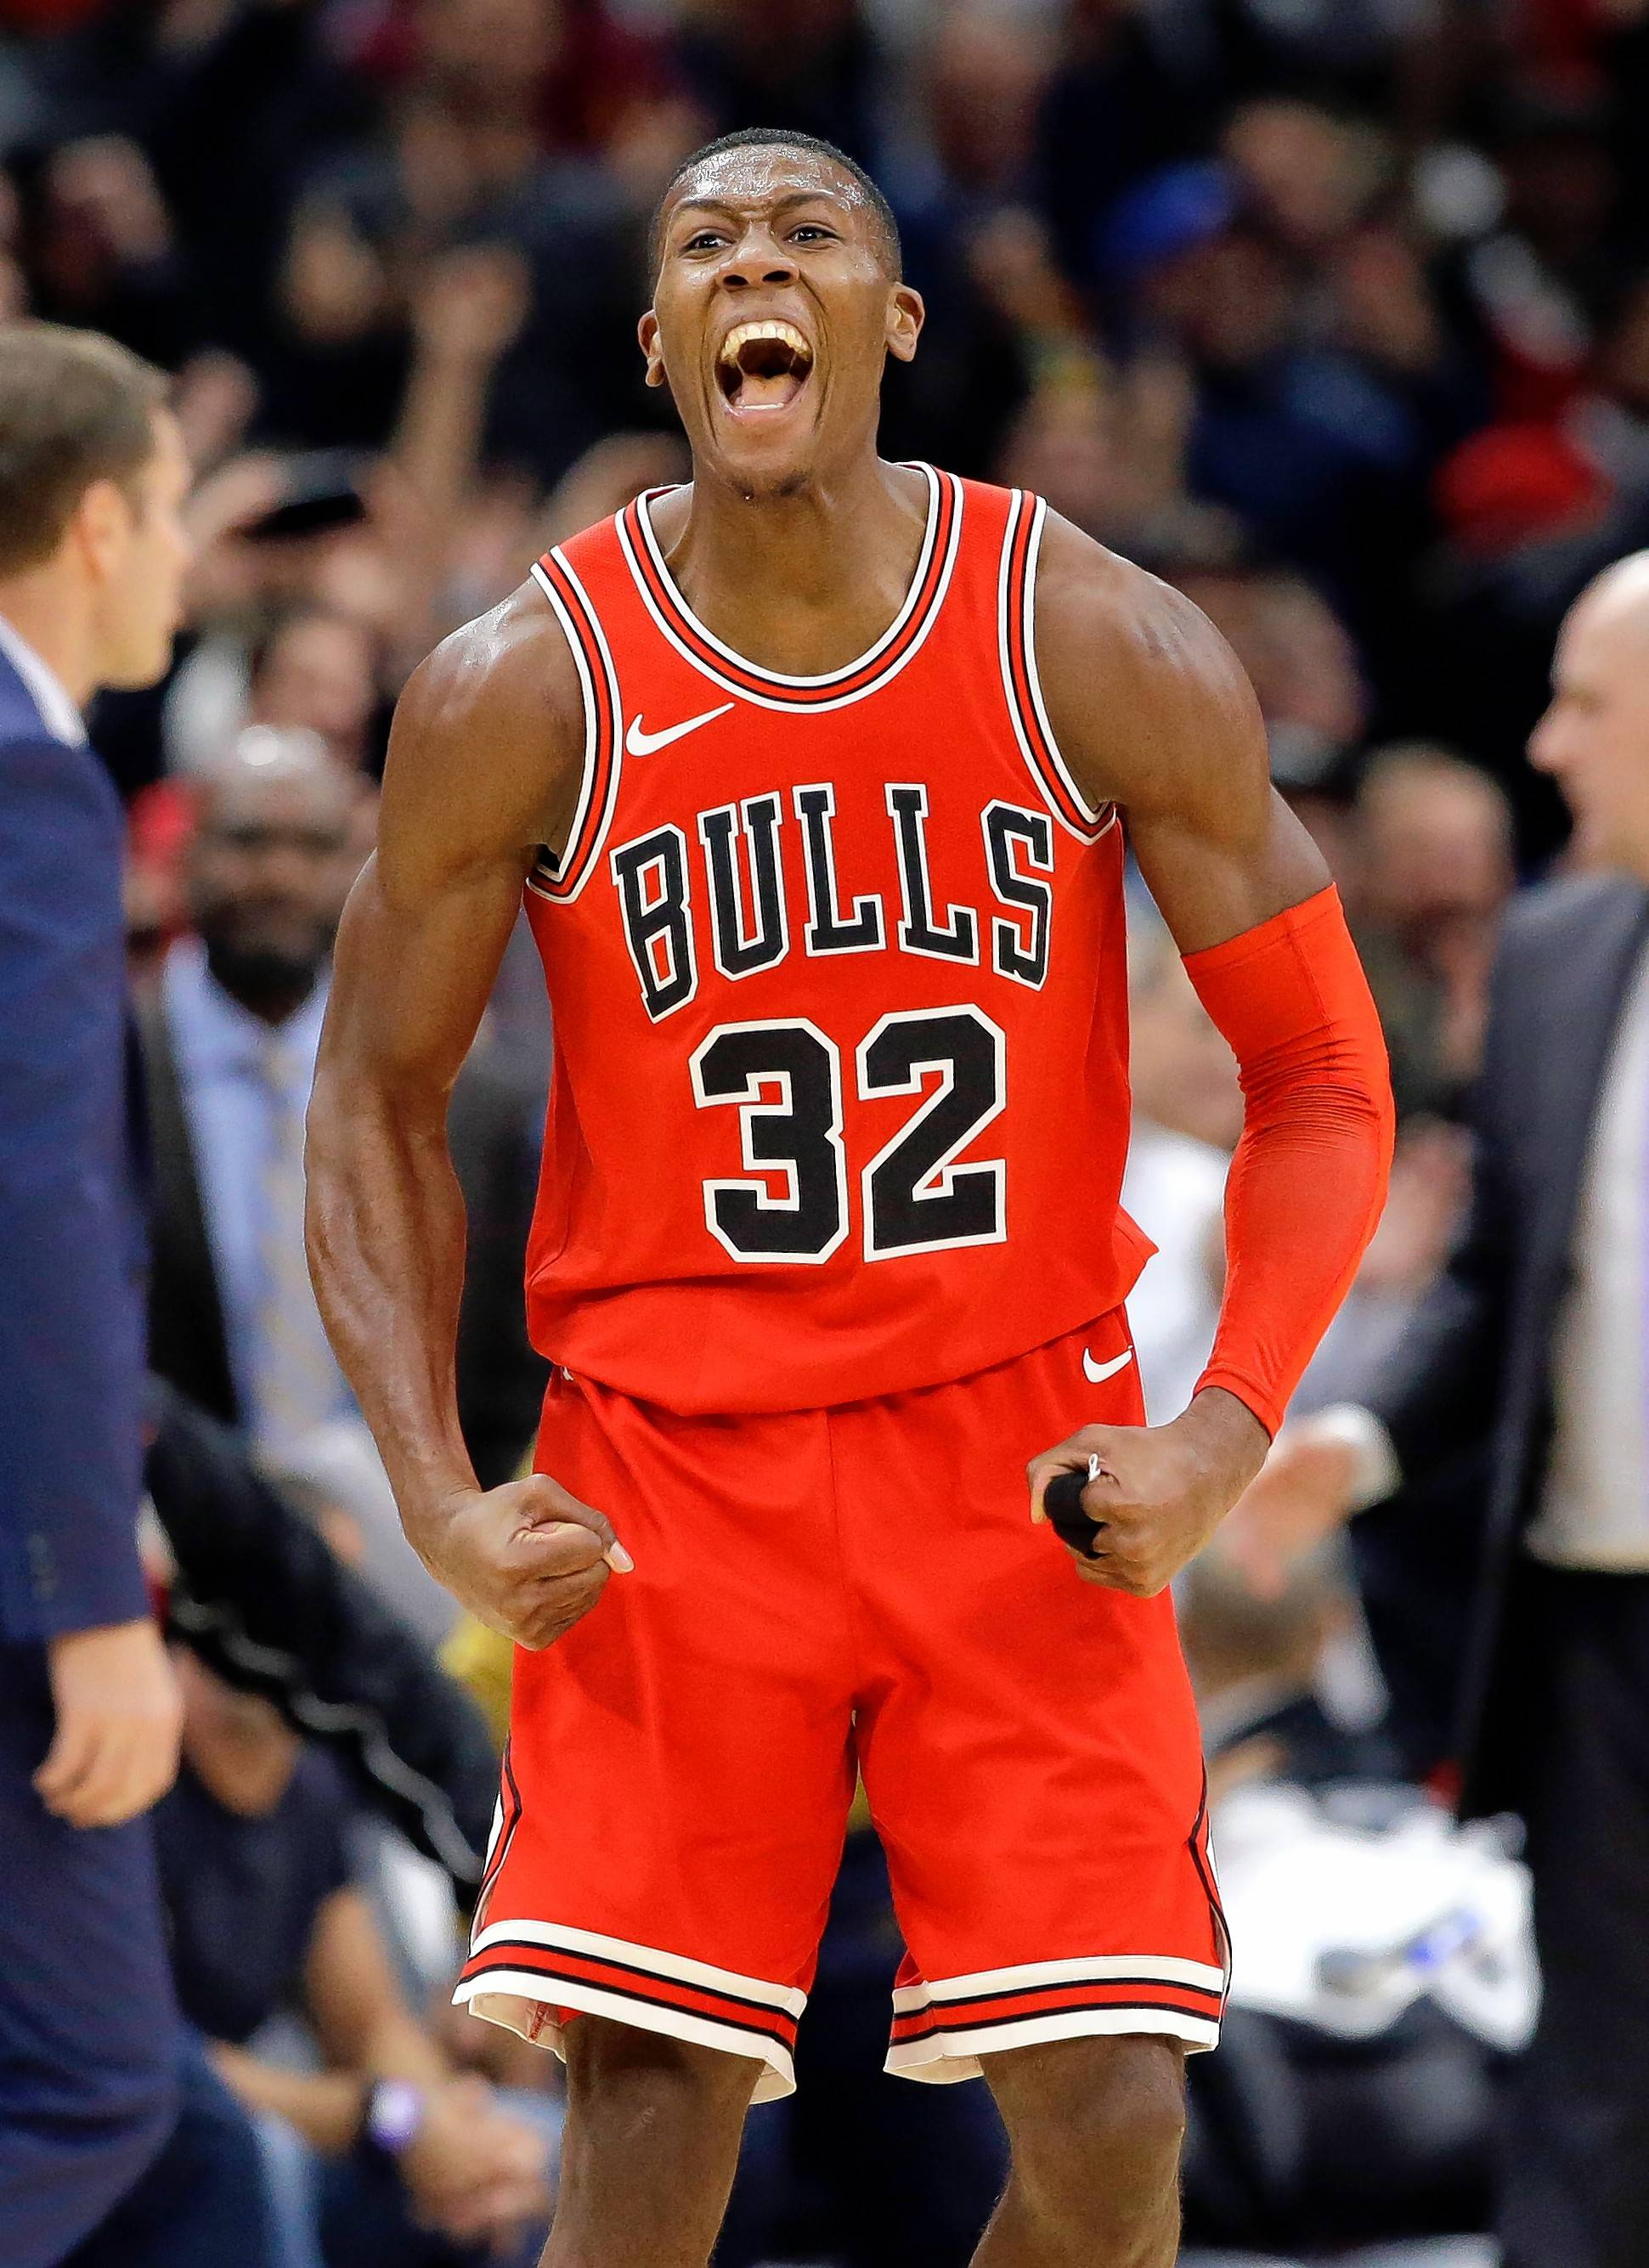 Thibs thought Dunn would be much improved in second season